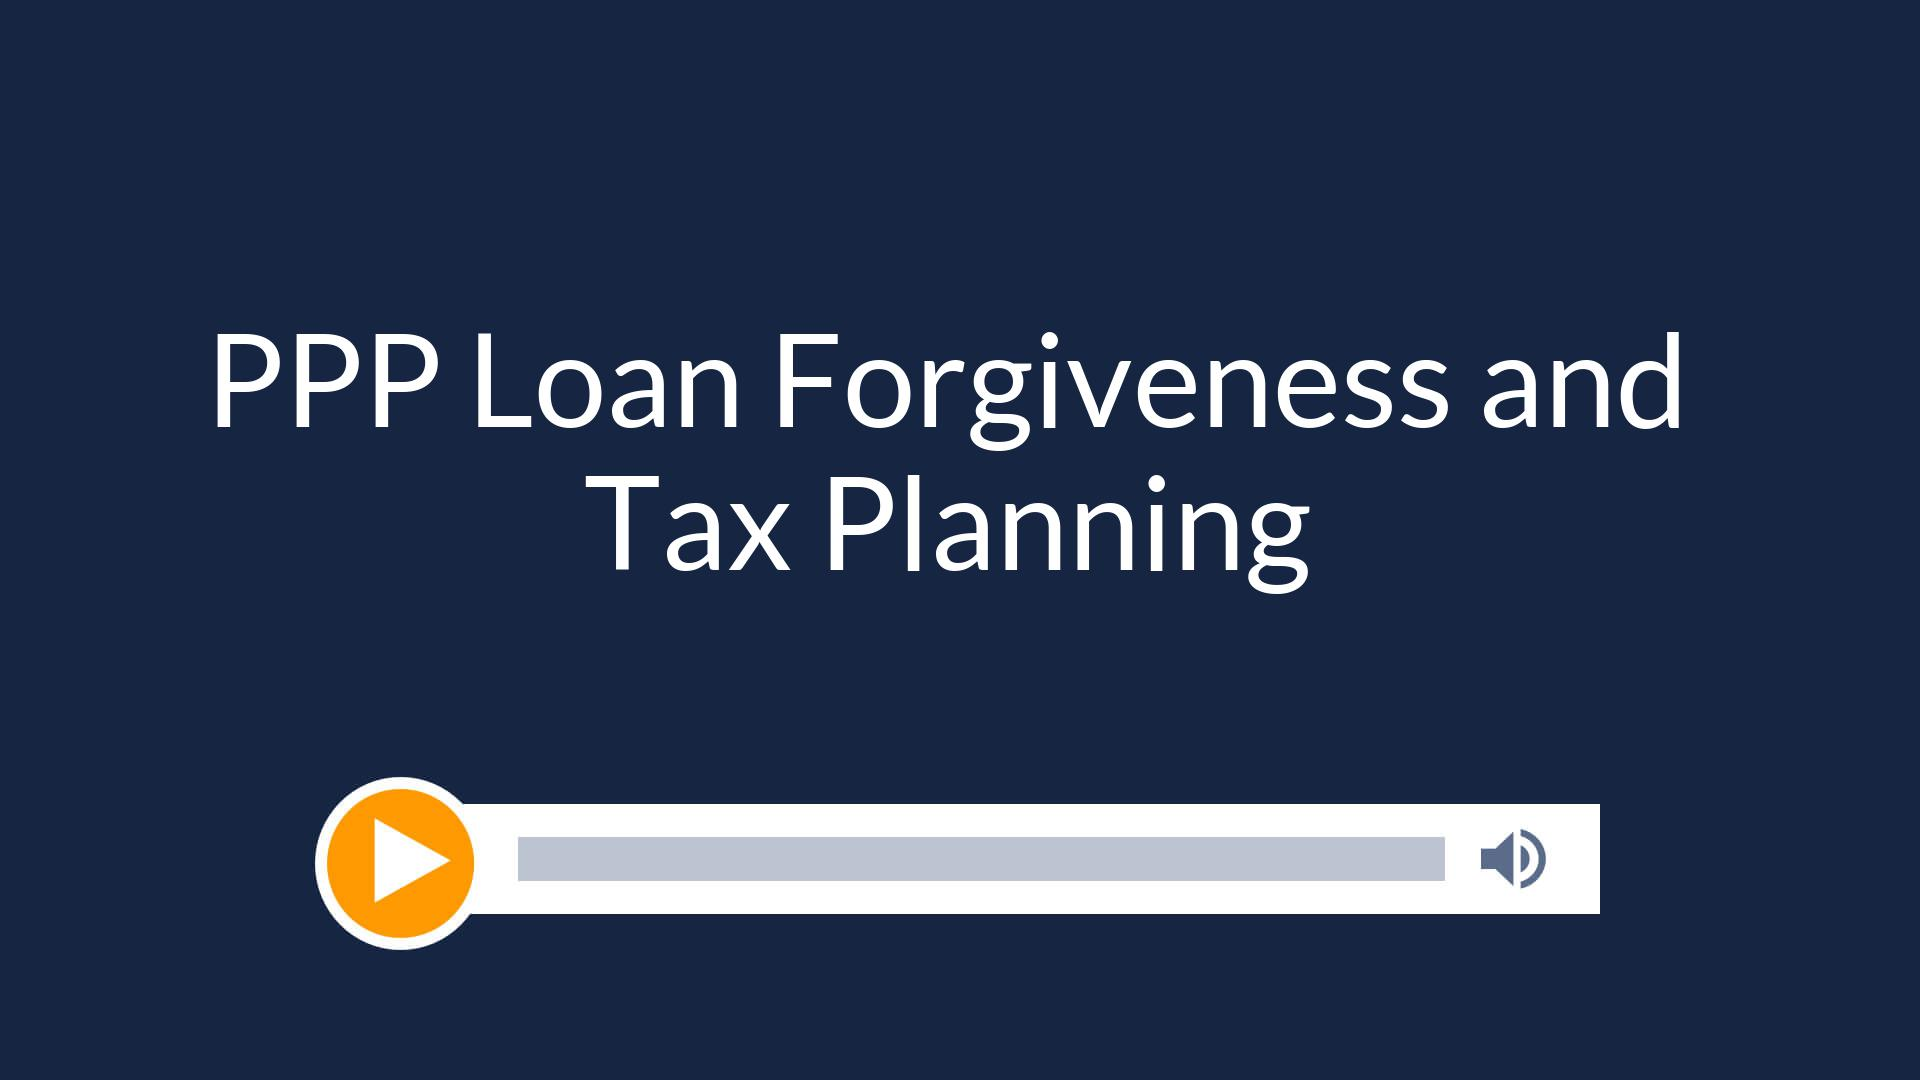 PPP Loan Forgiveness and Tax Planning